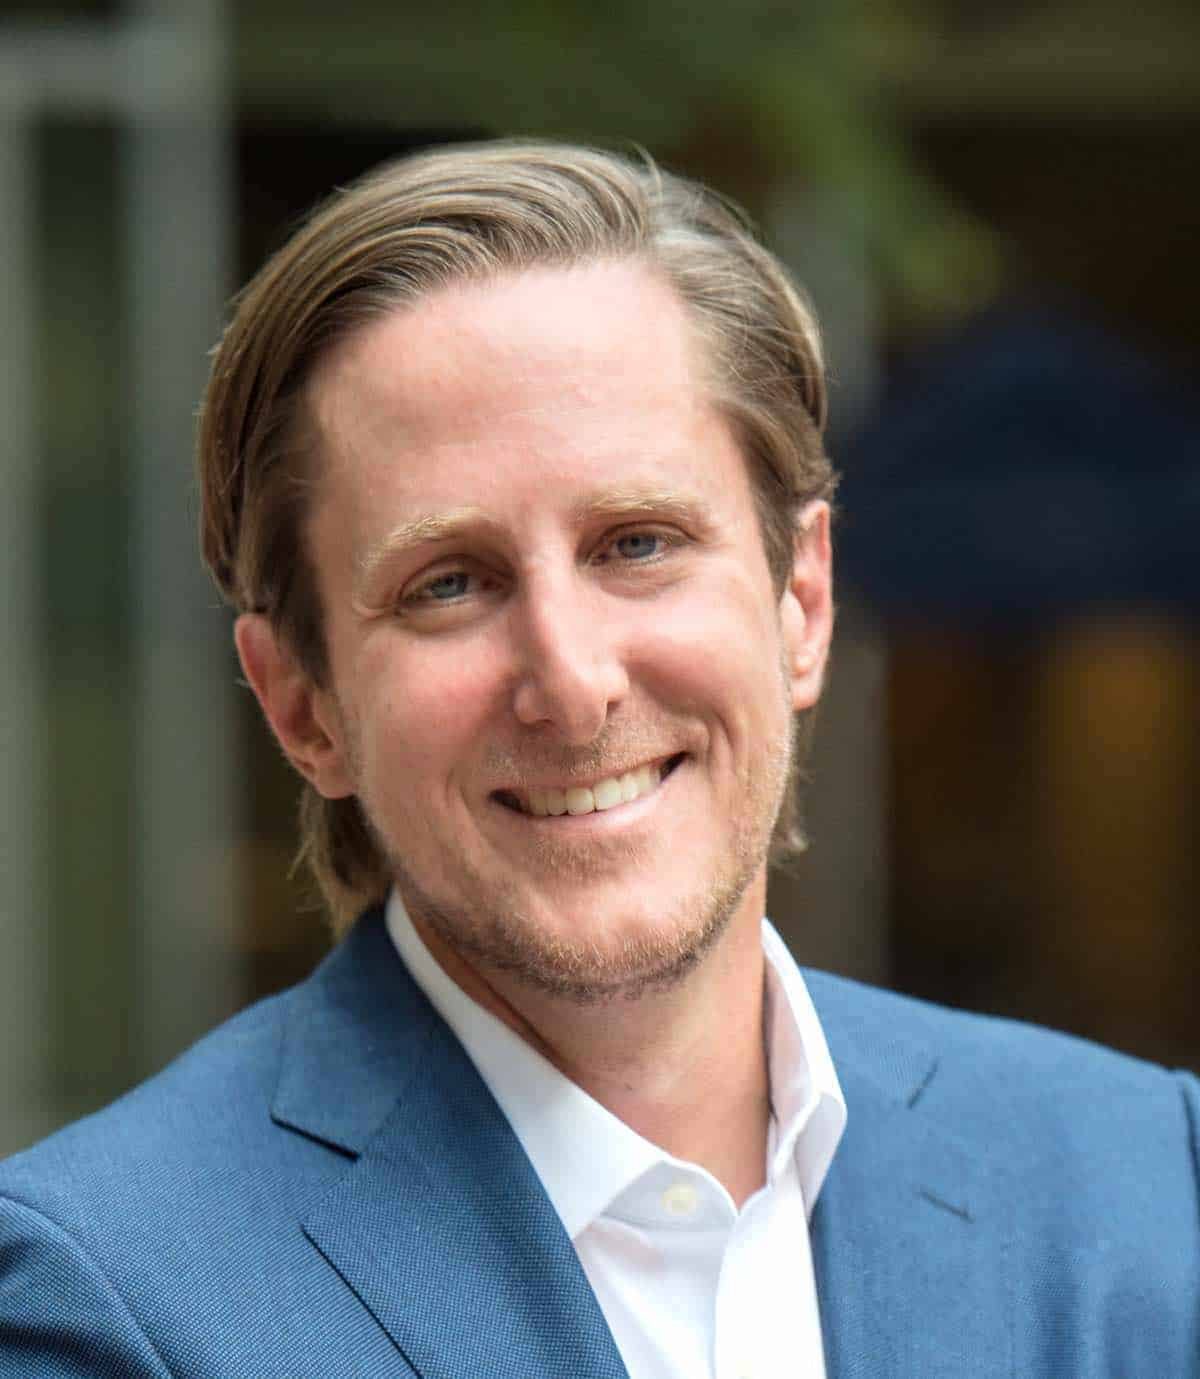 Groundfloor Initiates Public Offering Using Reg A+ to Accelerate Growth